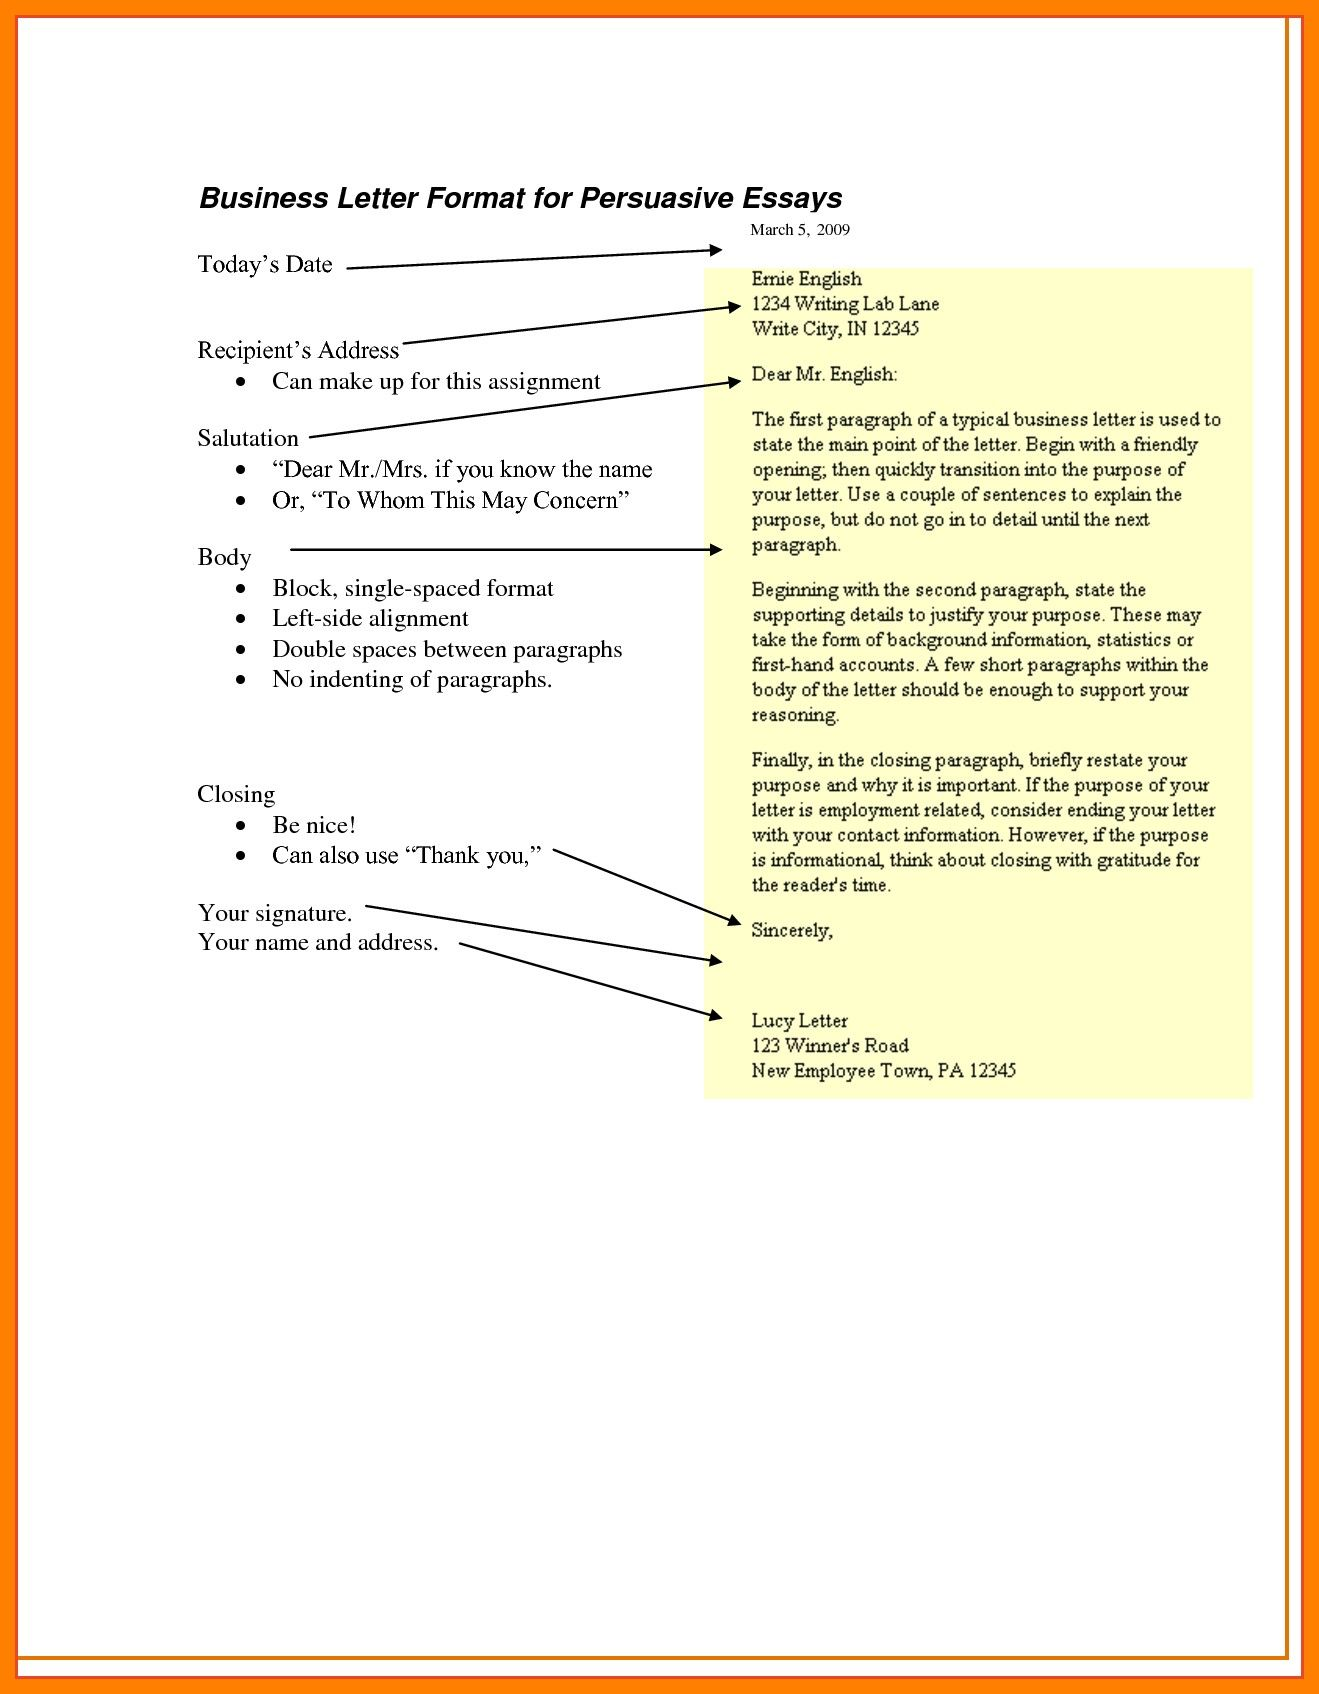 Example Persuasive Business Letter format Best 7